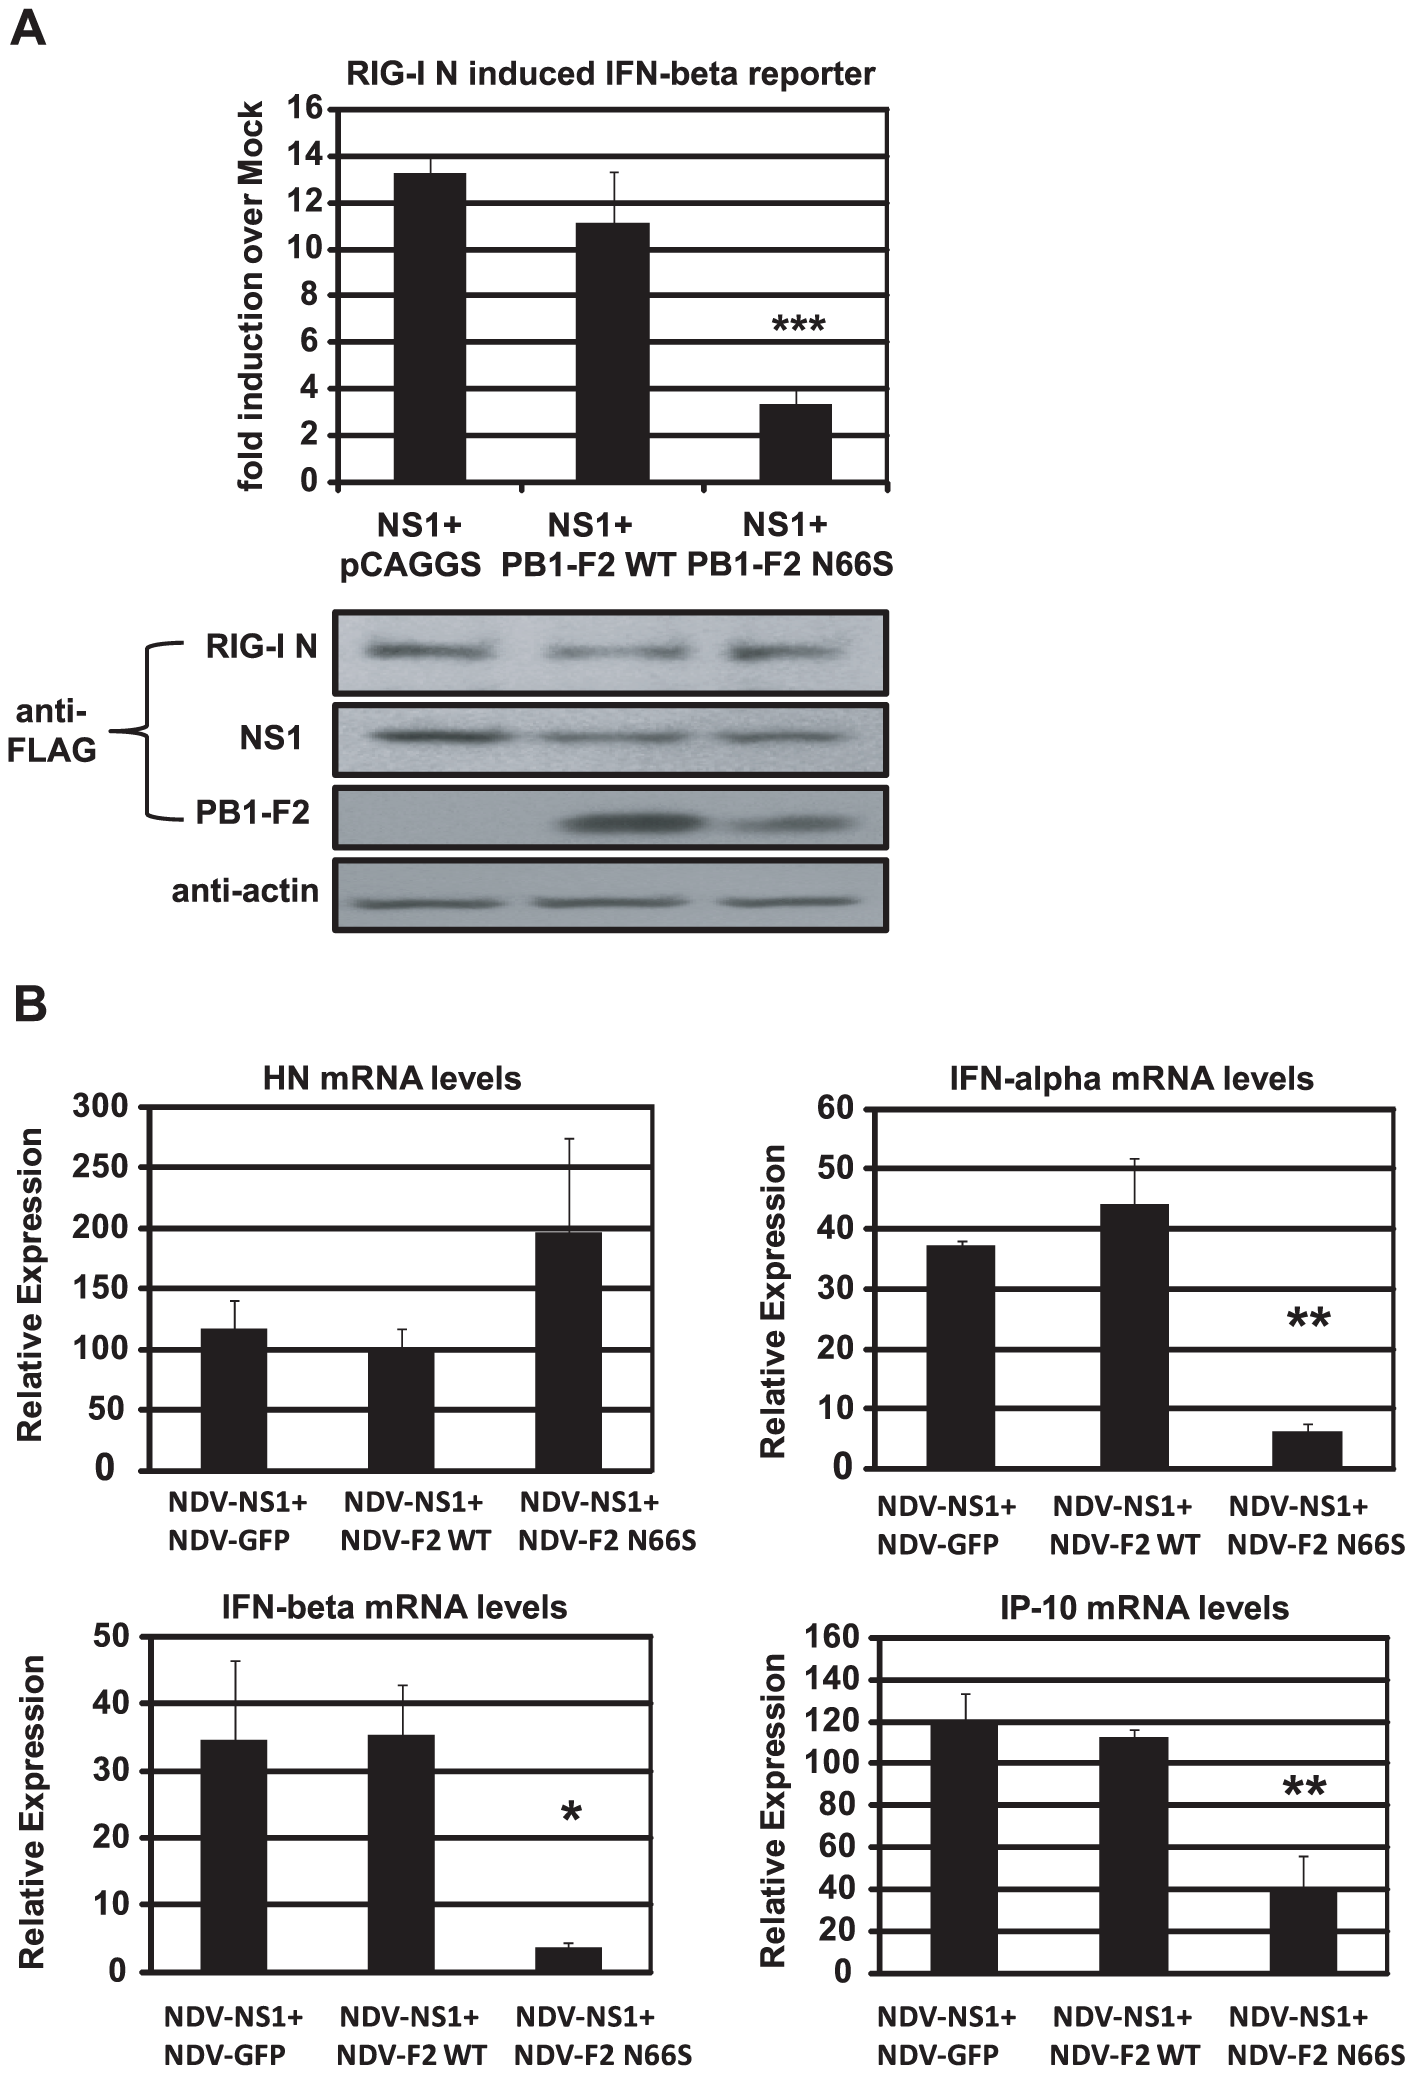 PB1-F2 N66S further enhances NS1 mediated IFN antagonism in an overexpression system.